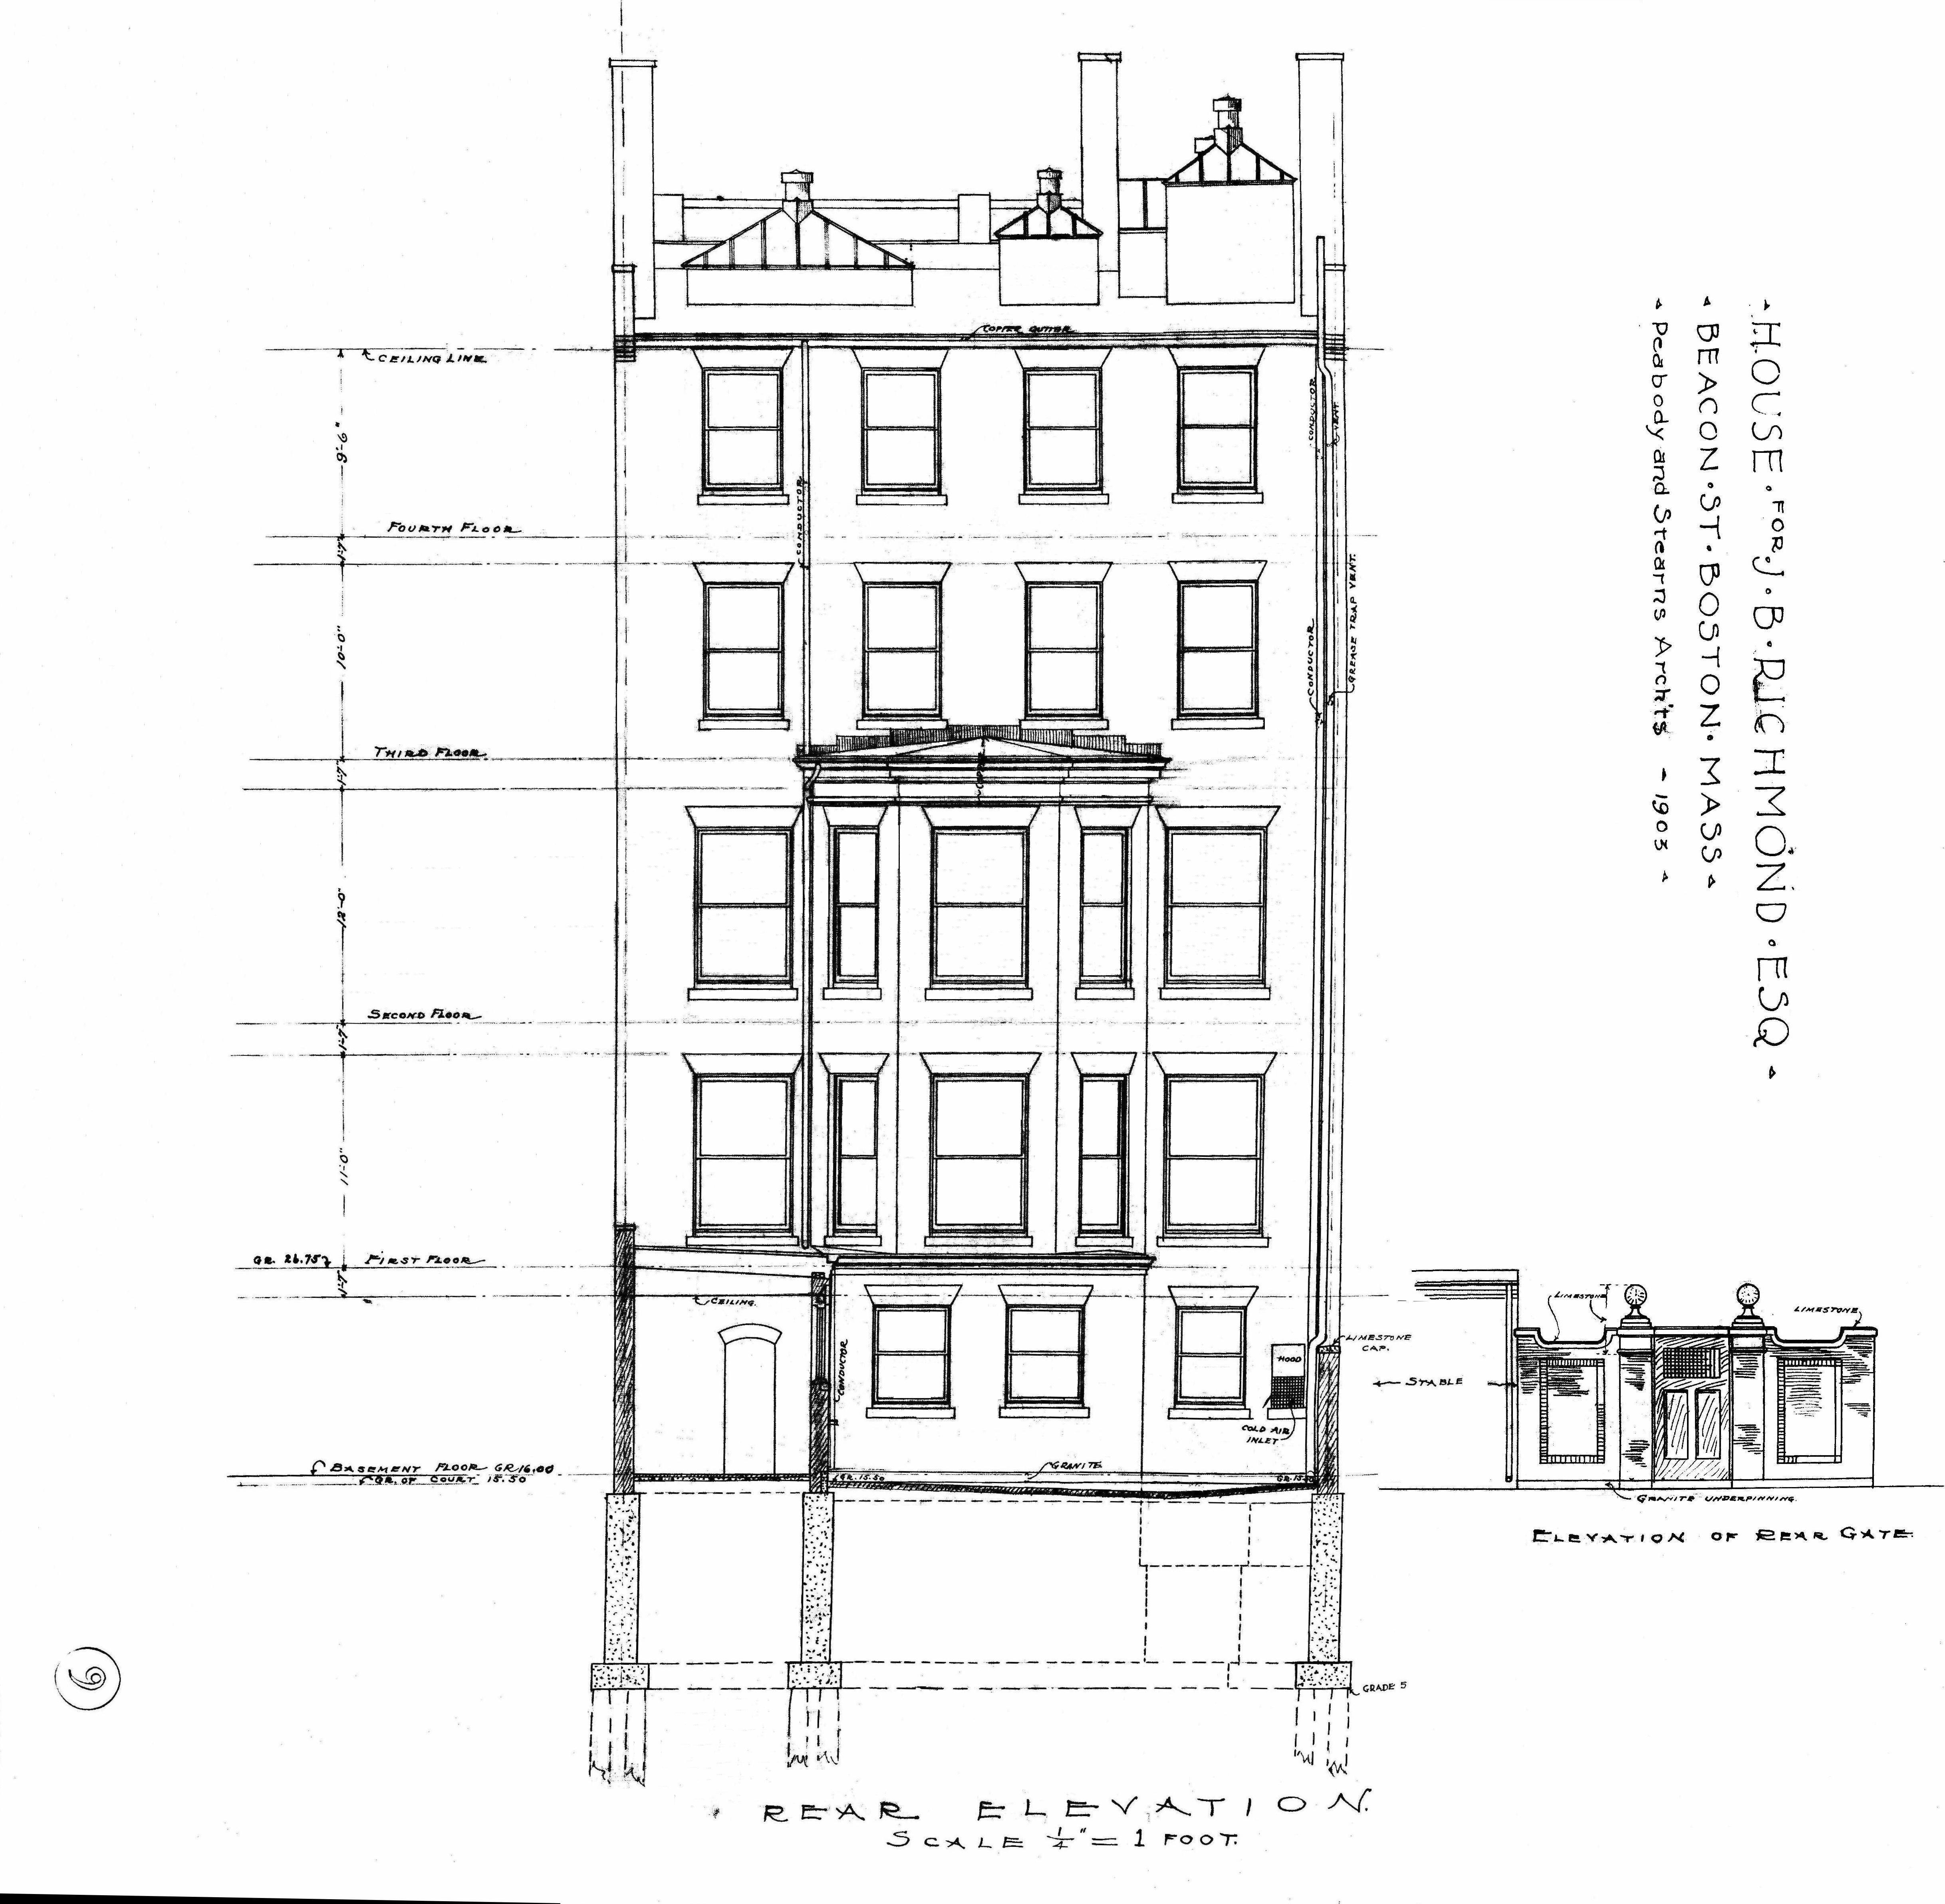 Architectural plans 310 beacon 1903 back bay houses for What is rear elevation